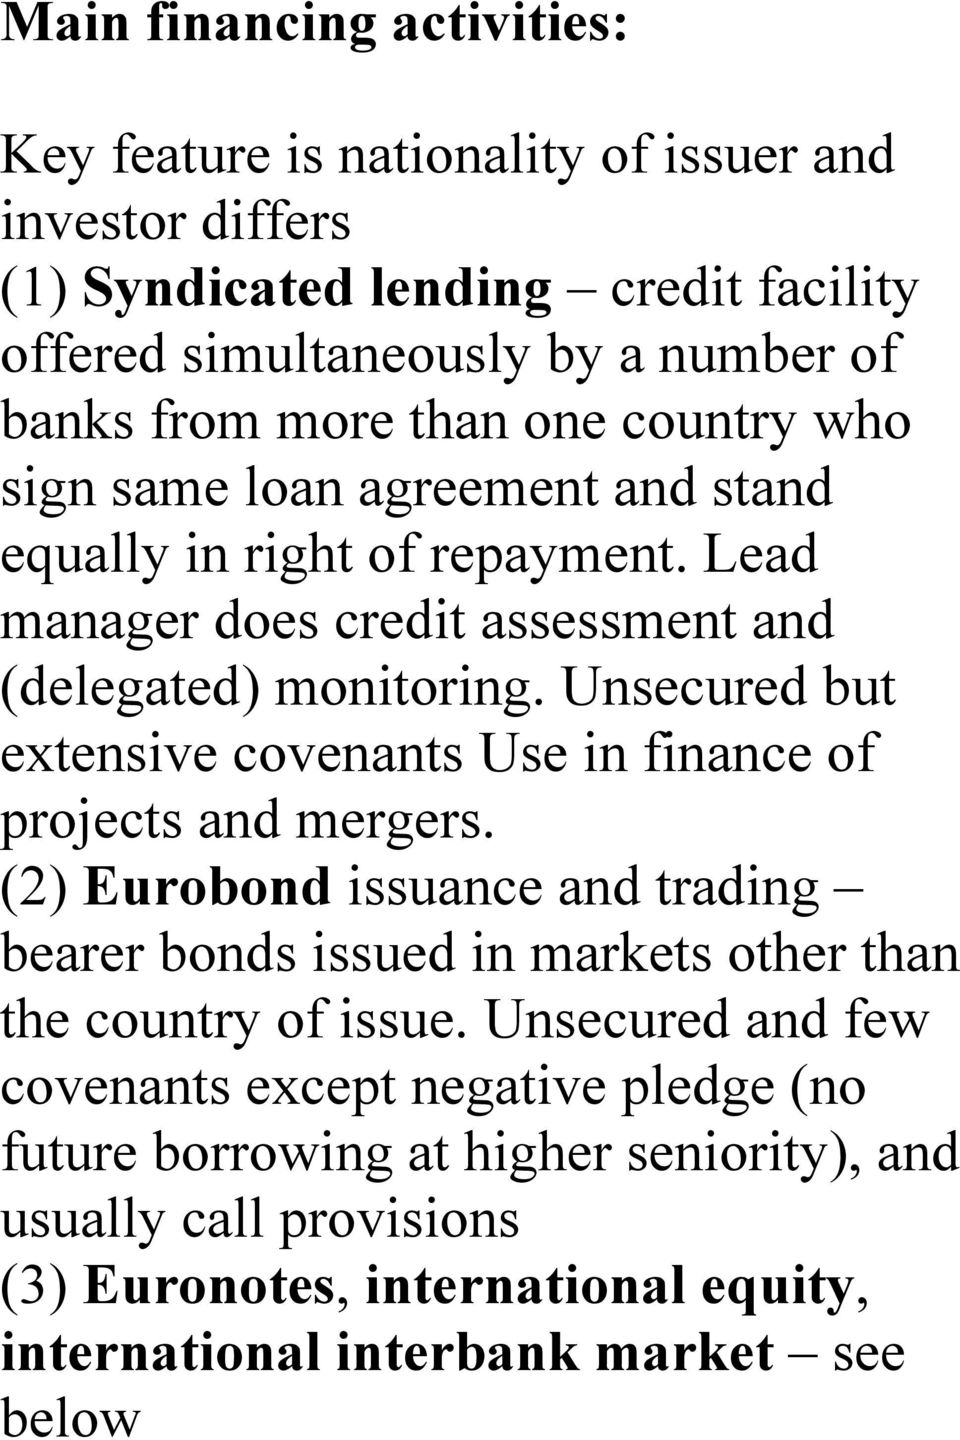 Unsecured but extensive covenants Use in finance of projects and mergers. (2) Eurobond issuance and trading bearer bonds issued in markets other than the country of issue.